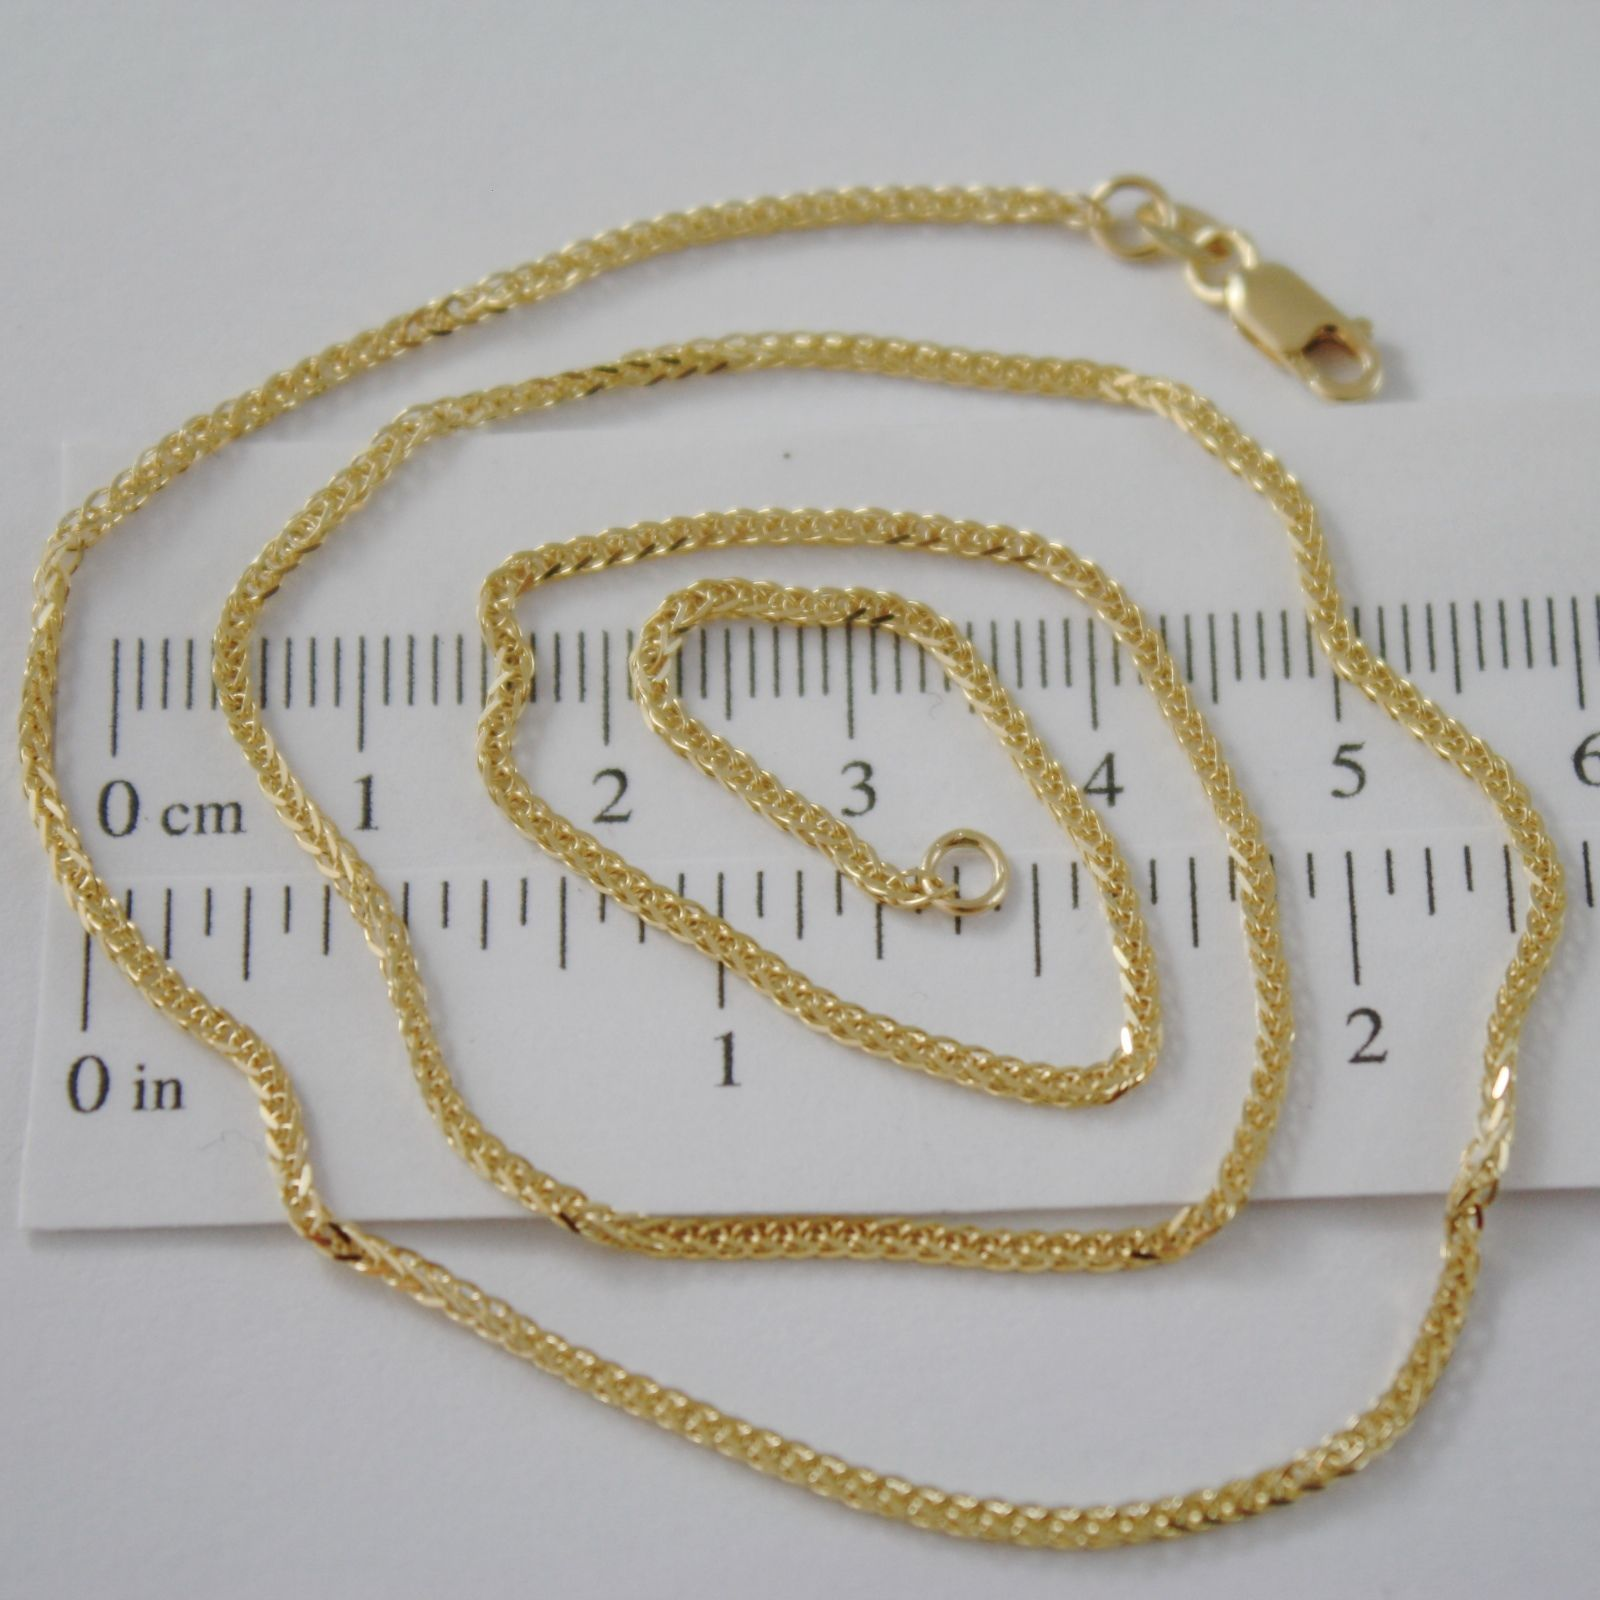 SOLID 18K YELLOW GOLD CHAIN NECKLACE 2MM EAR SQUARE LINK 17.71 IN, MADE IN ITALY